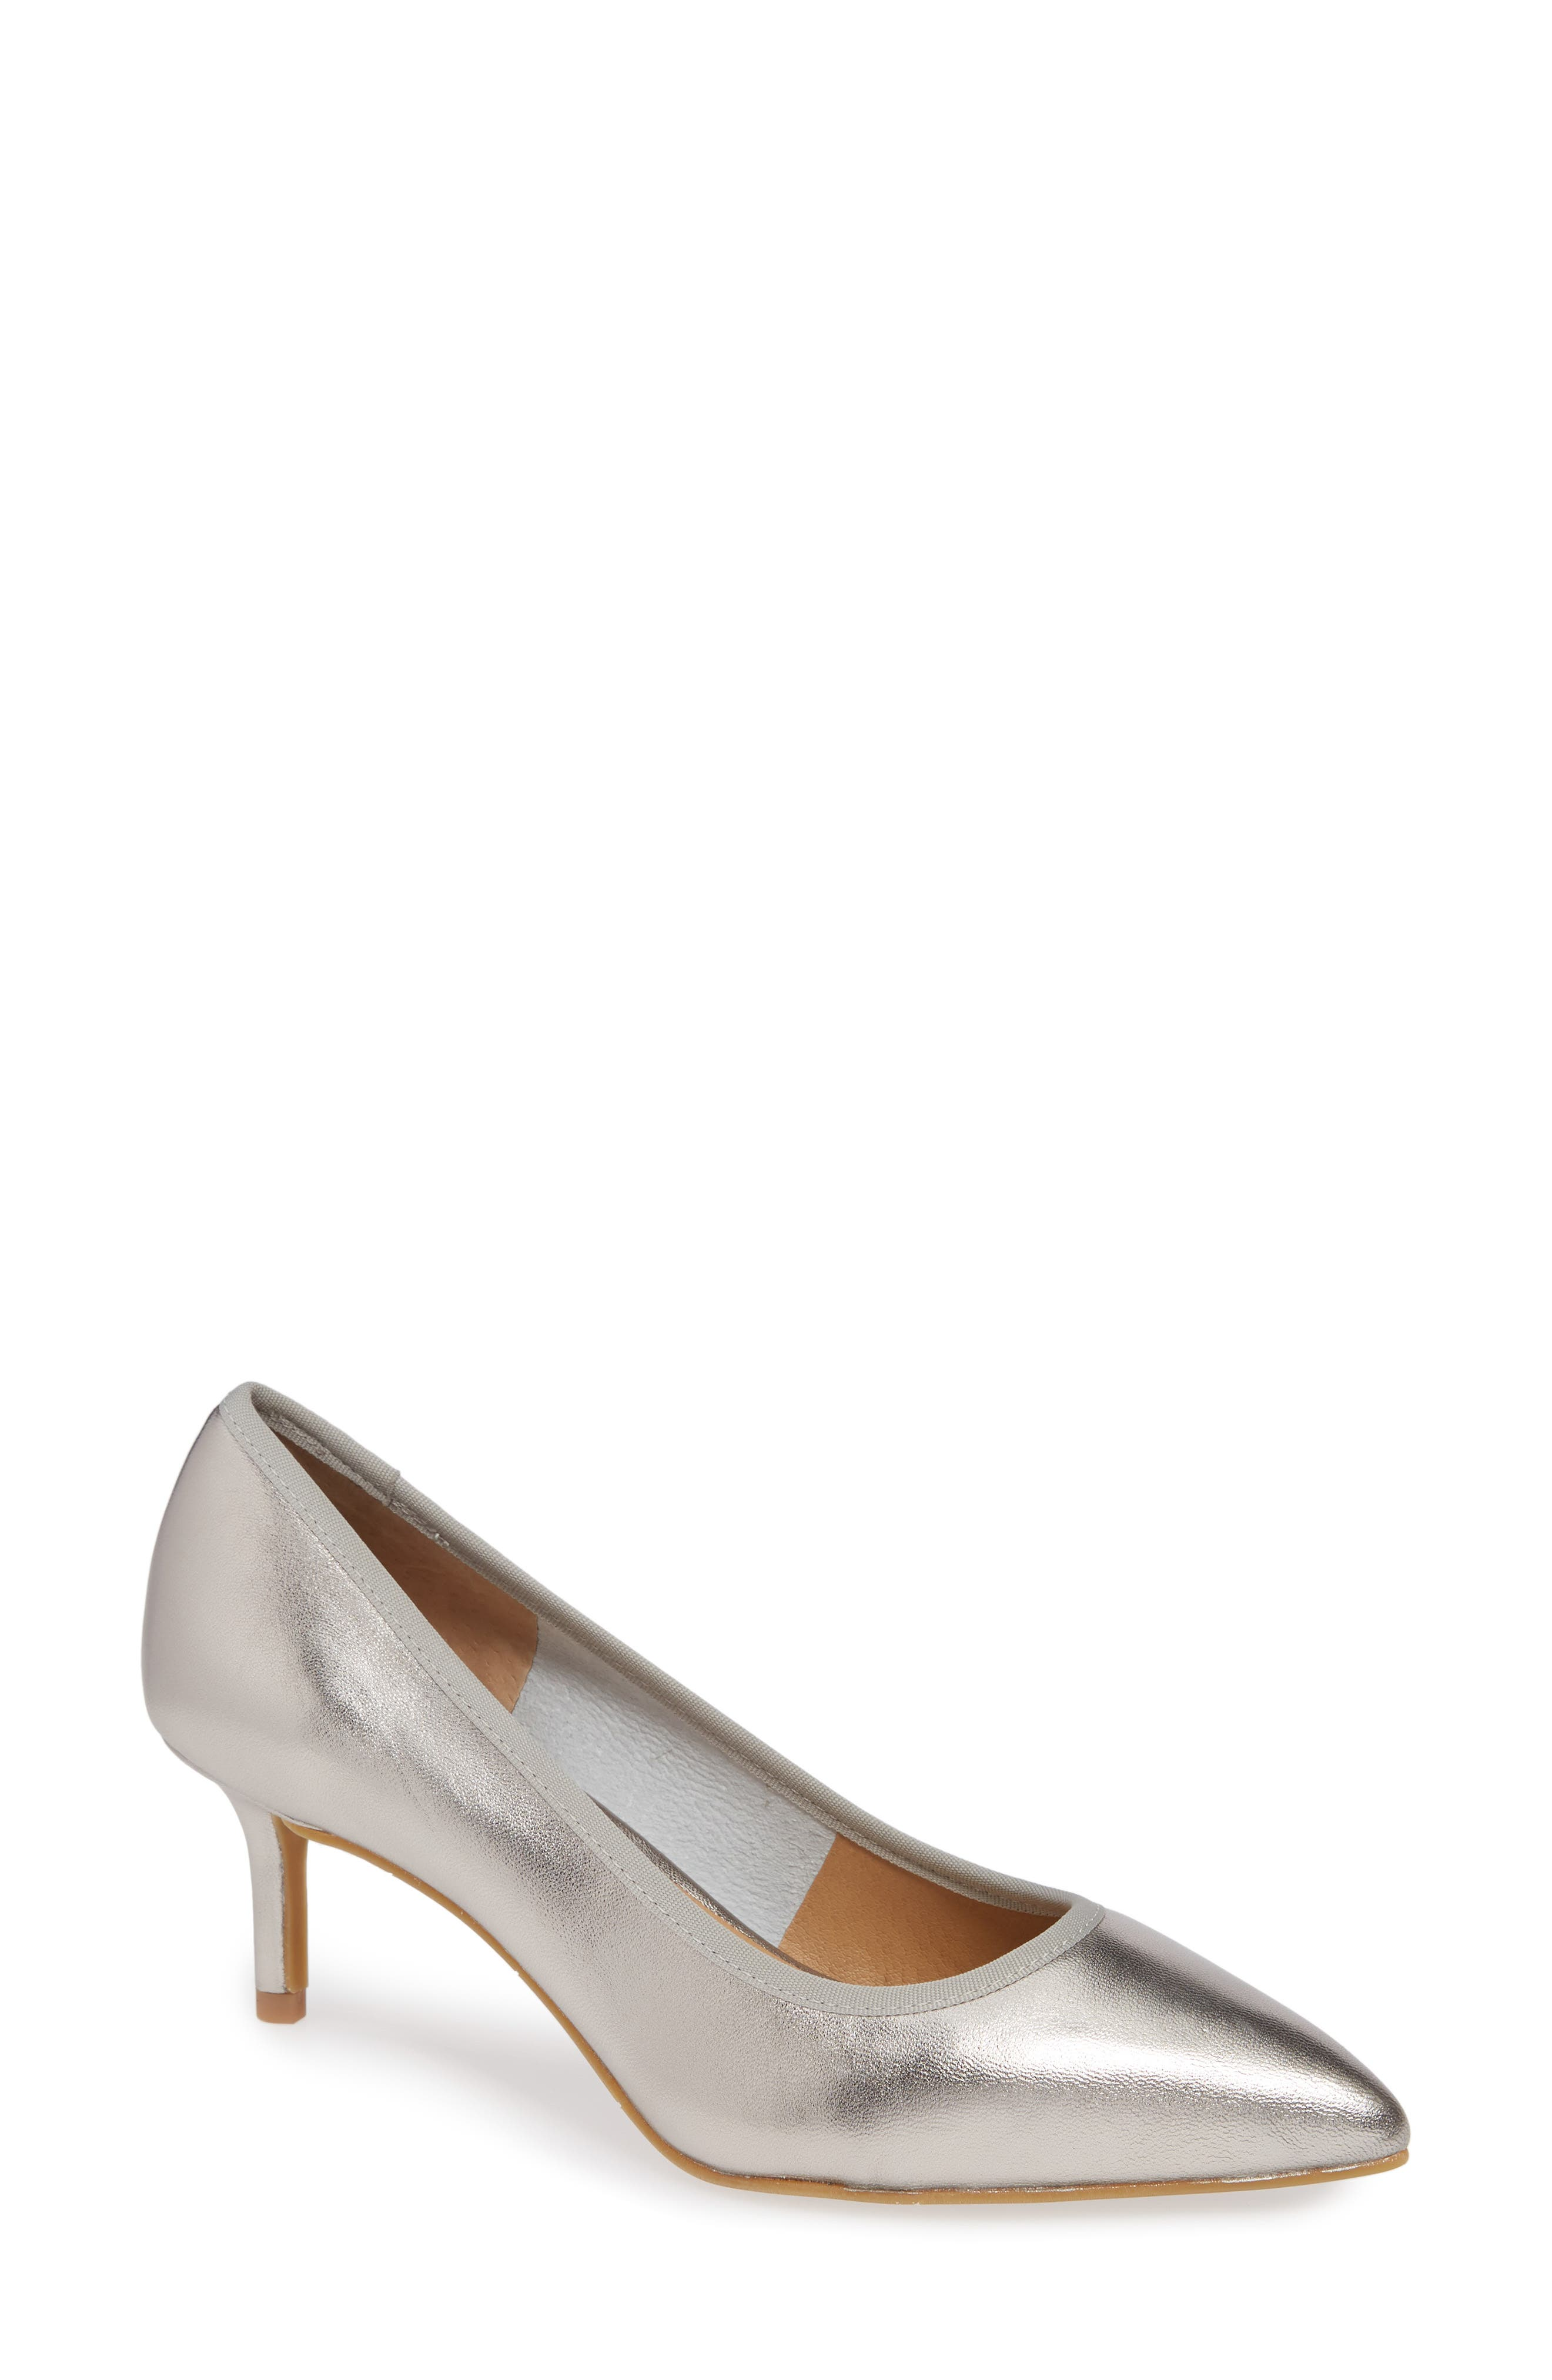 NIC + ZOE Cora Pointy Toe Pump,                             Main thumbnail 1, color,                             PEWTER LEATHER